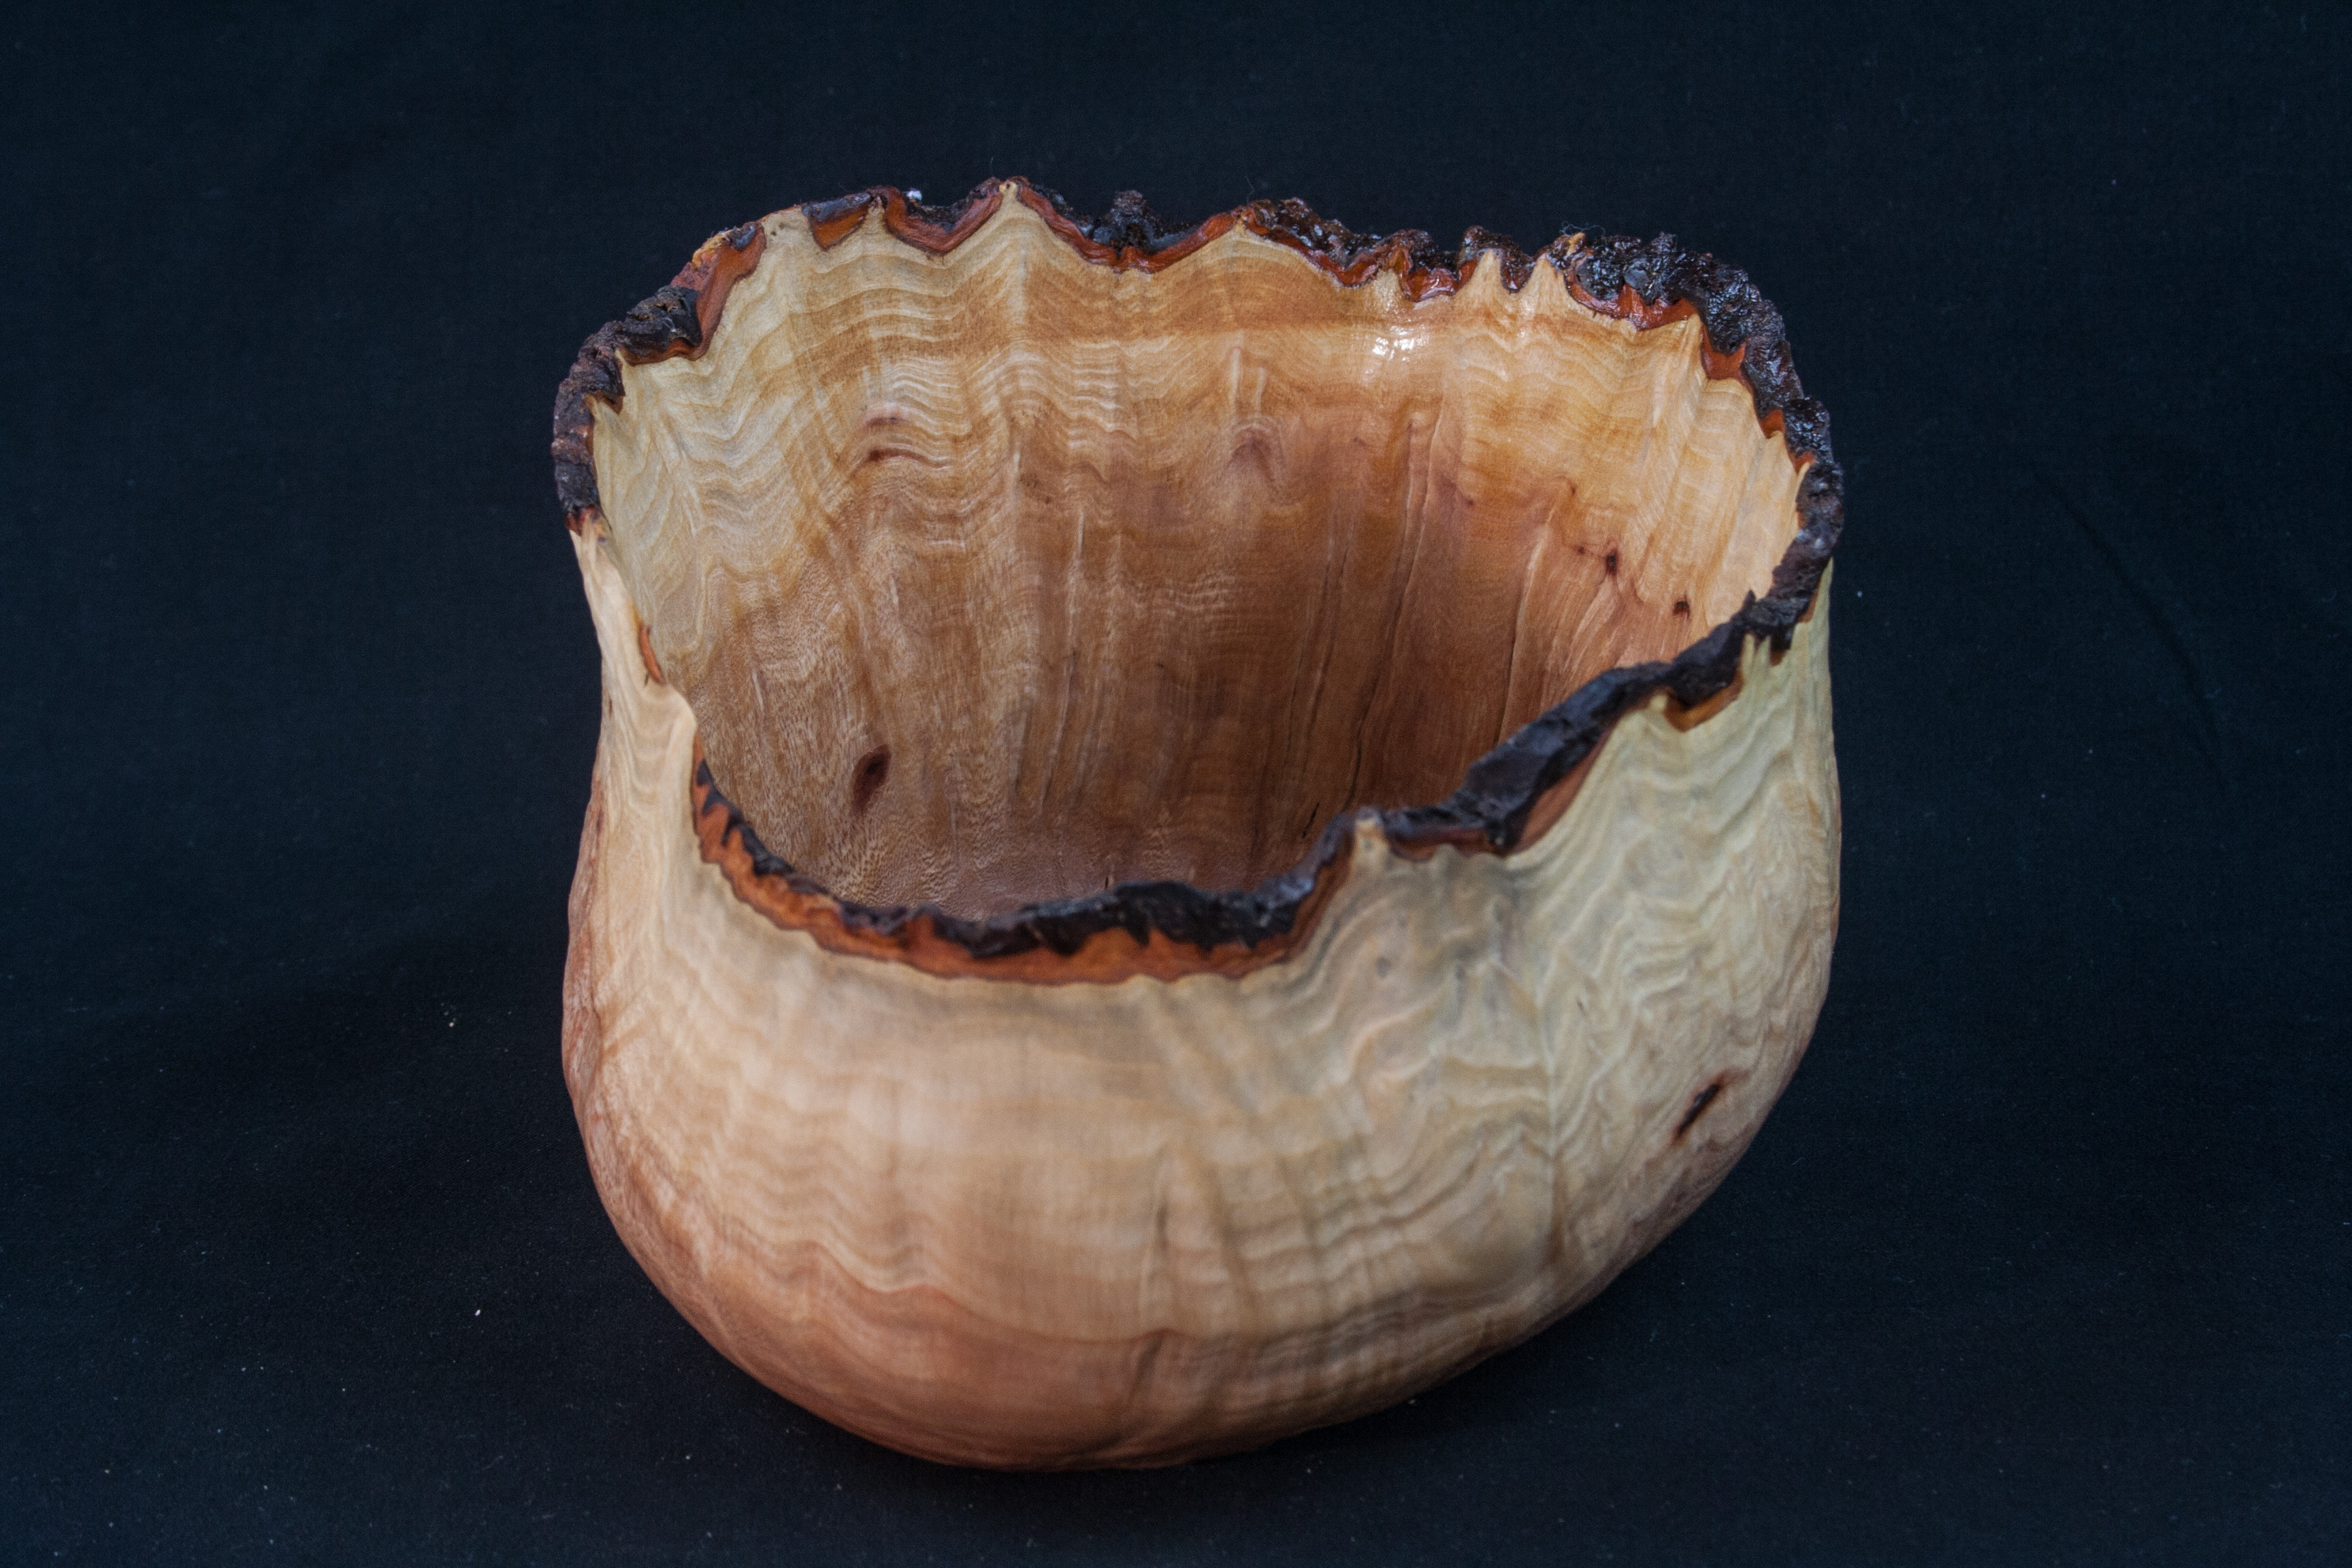 59 Madrone Burl Natural Edge Distorted 6 x 4 ...... $89......SOLD